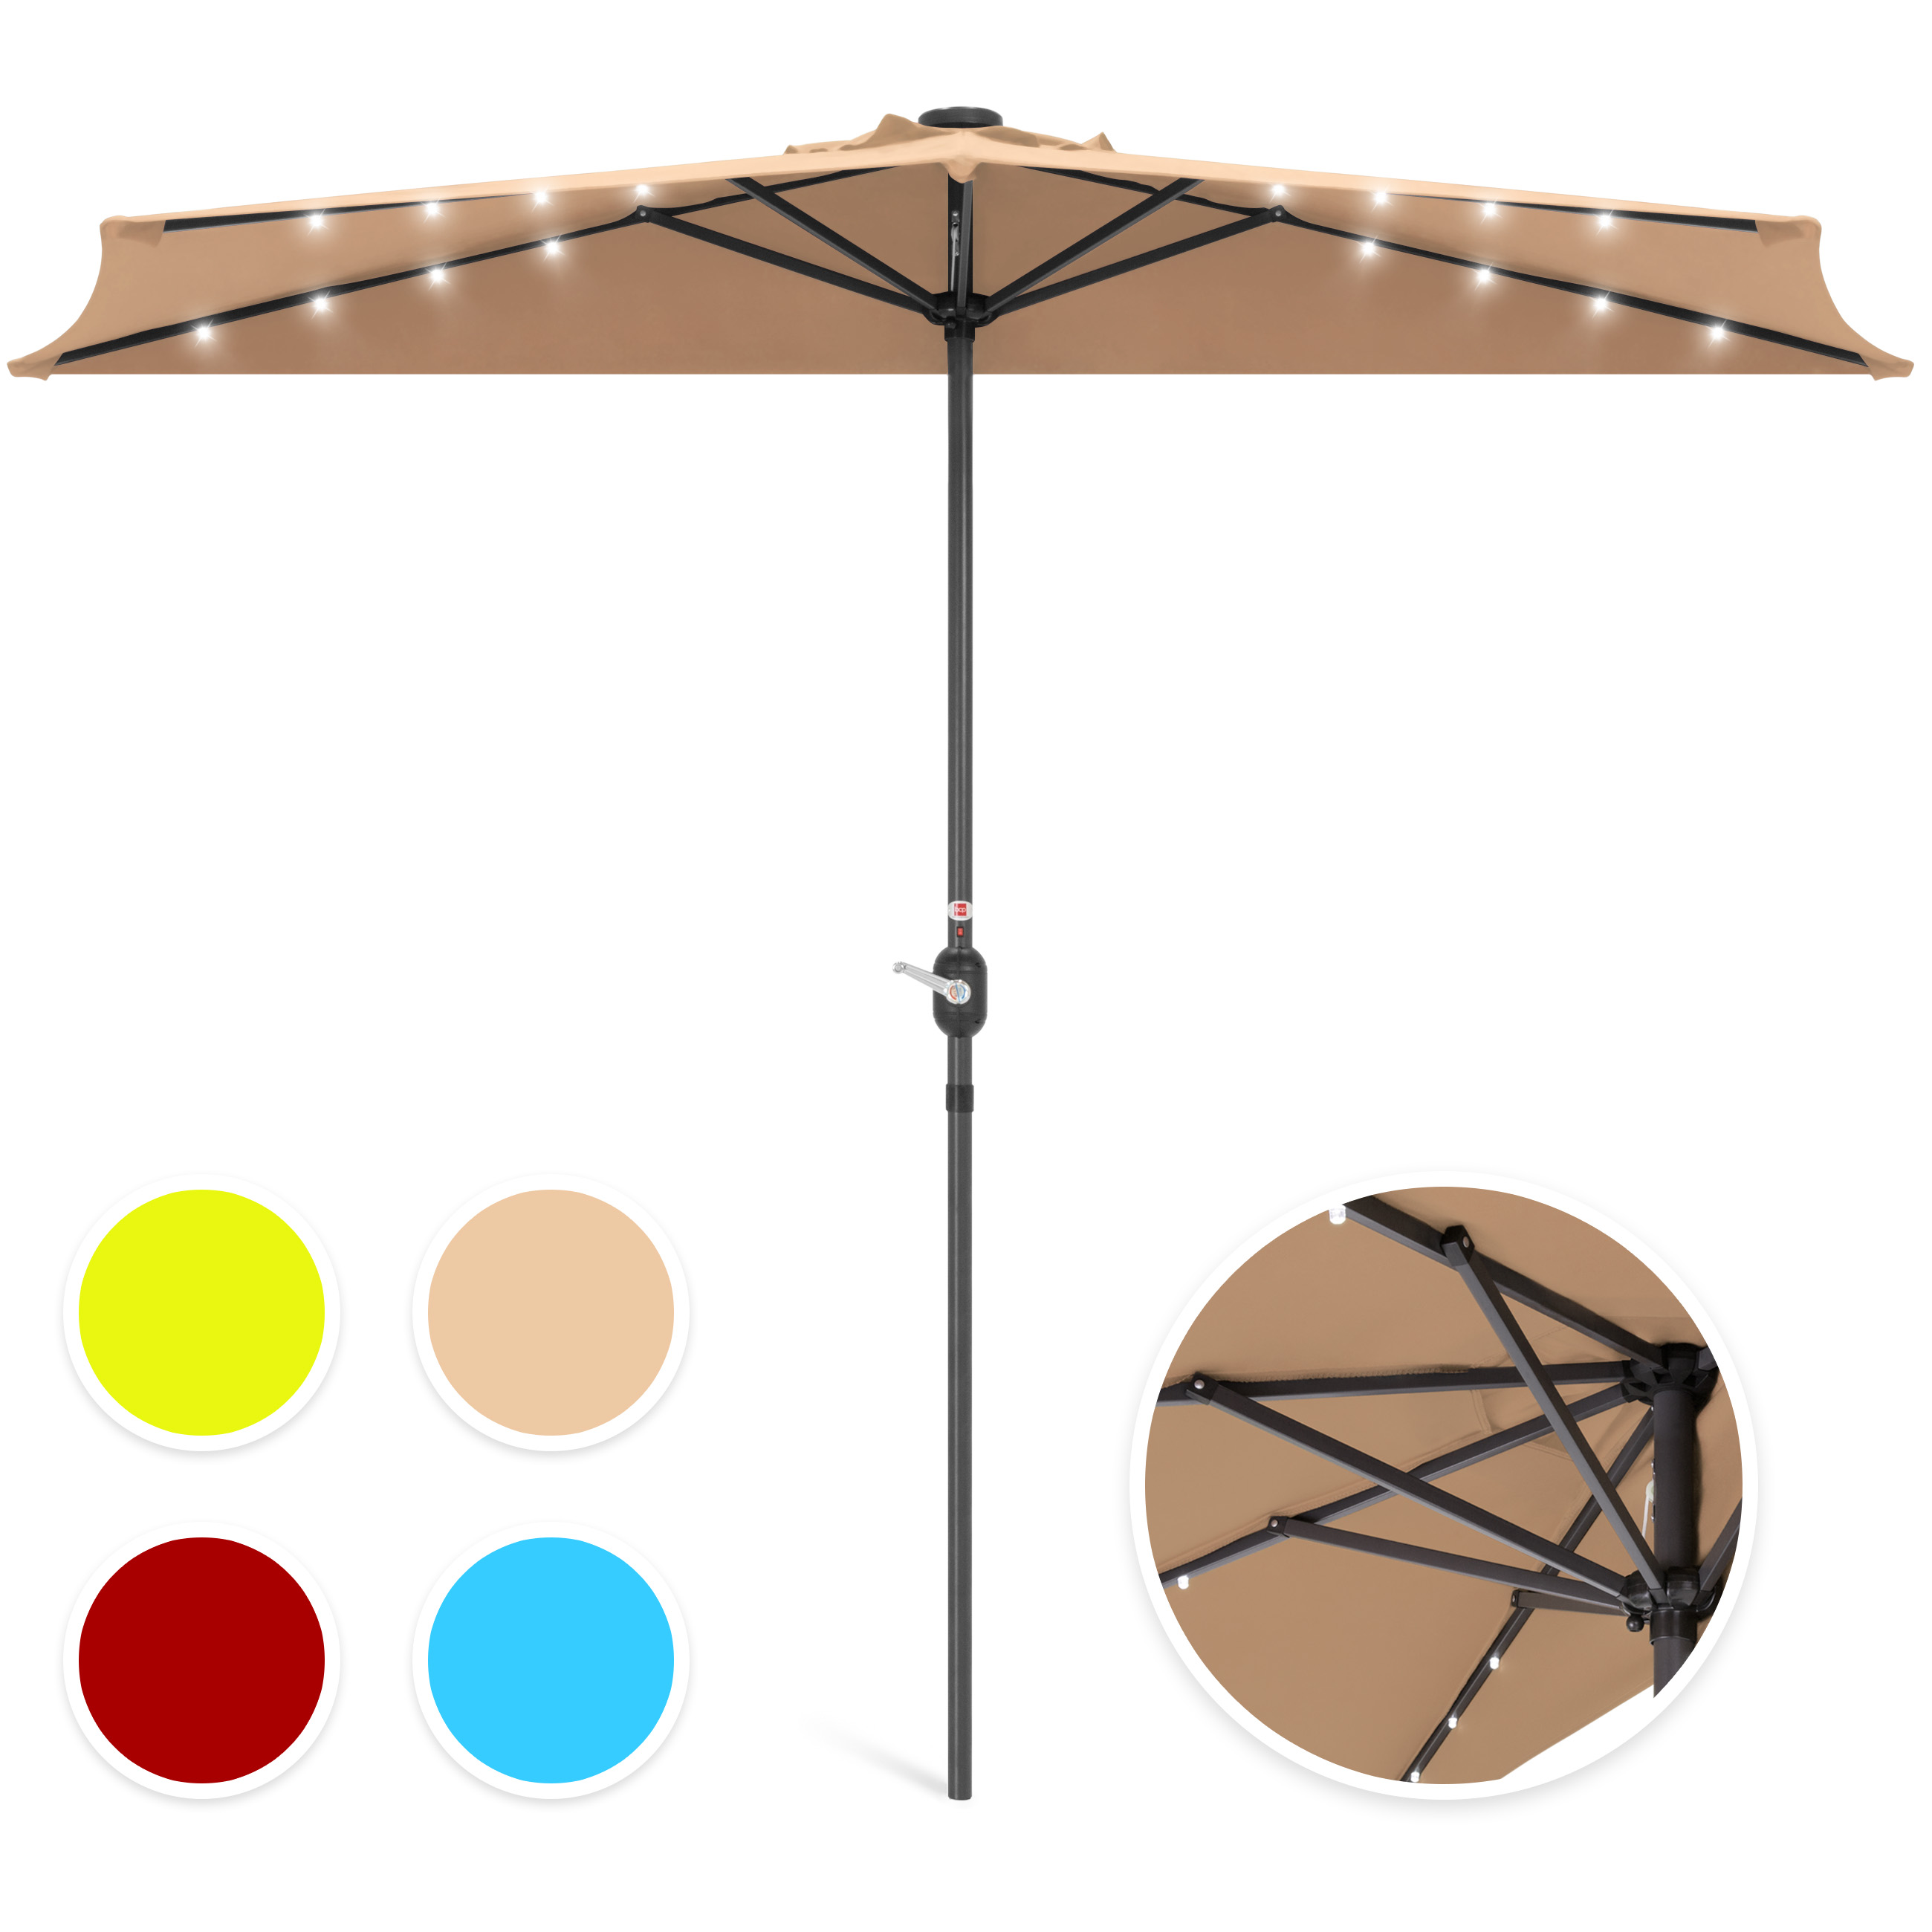 Best Choice Products 8.5ft Solar LED Half Patio Umbrella w/ Crank - Tan